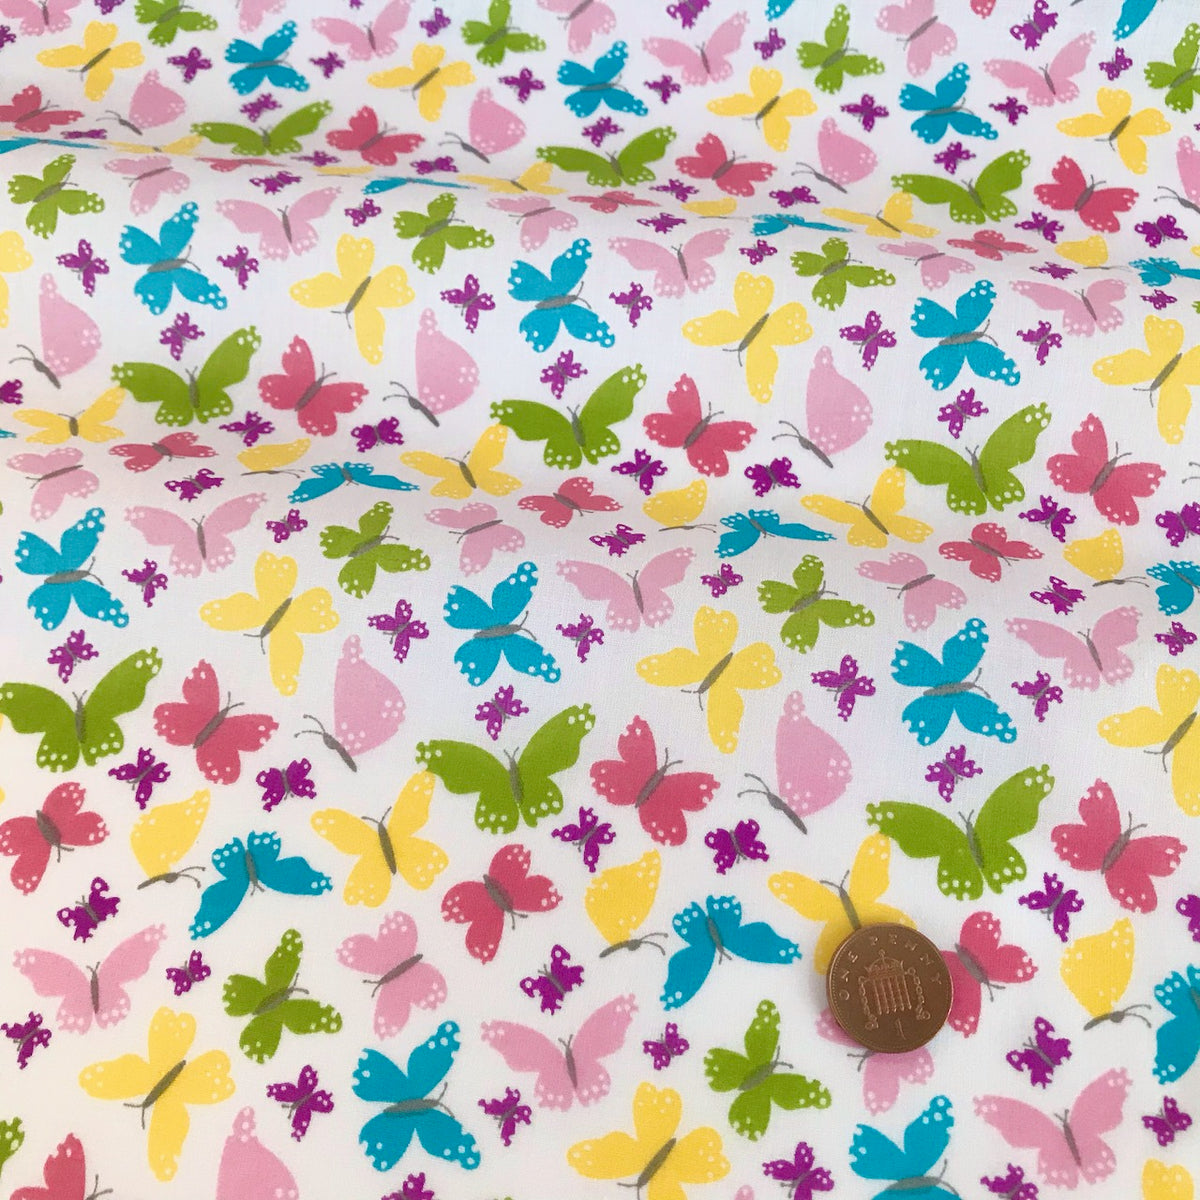 Rainbow Butterflies Fabric Polycotton Per 1/2 Metre 112cm Wide